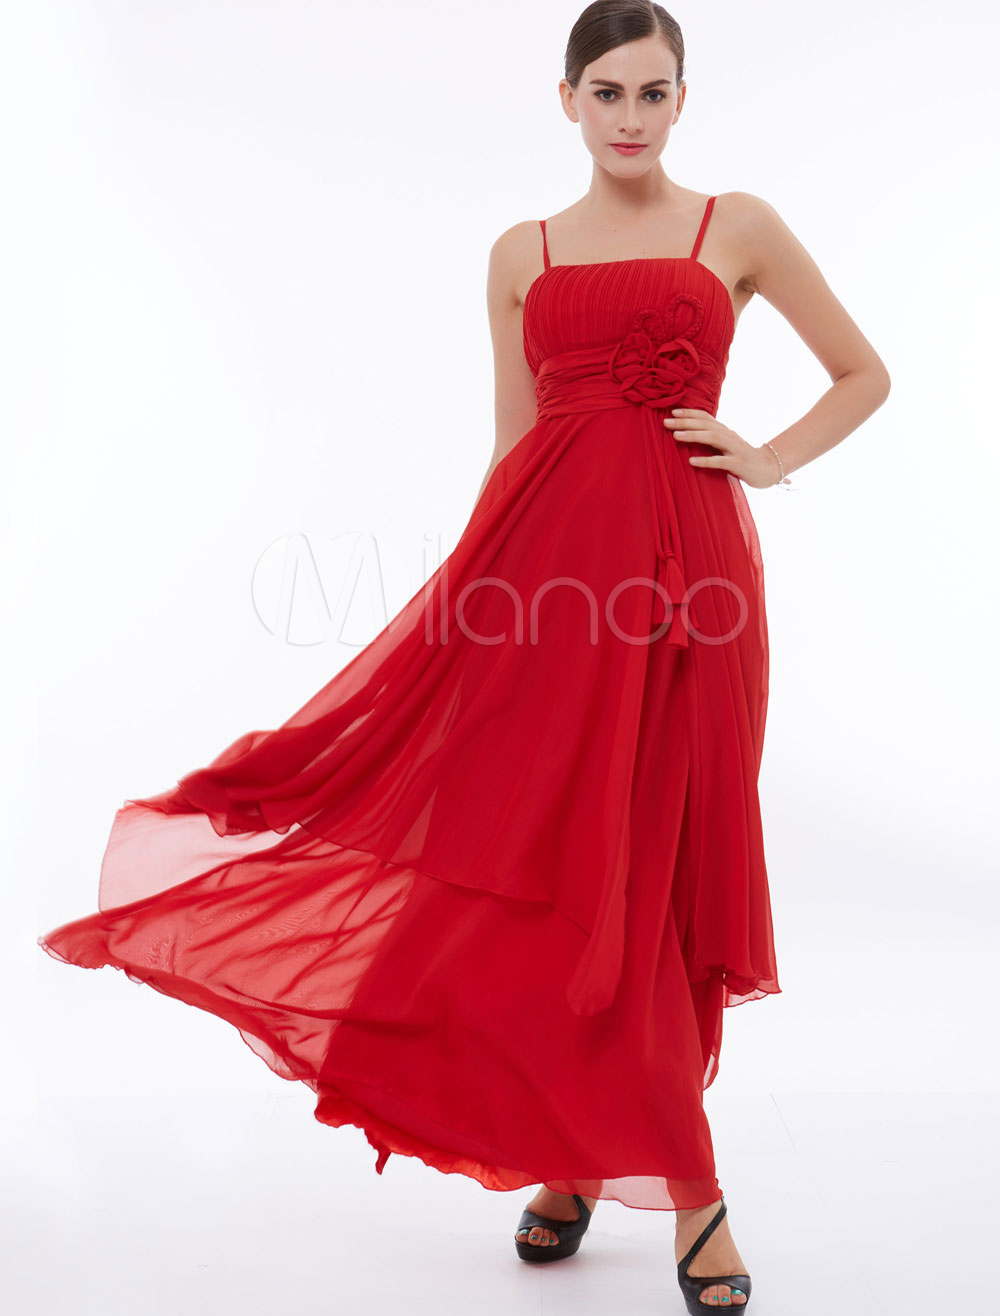 Red Prom Dresses Chiffon Straps Flowers Tassels Pleated Tiered Long Bridesmaid Dress